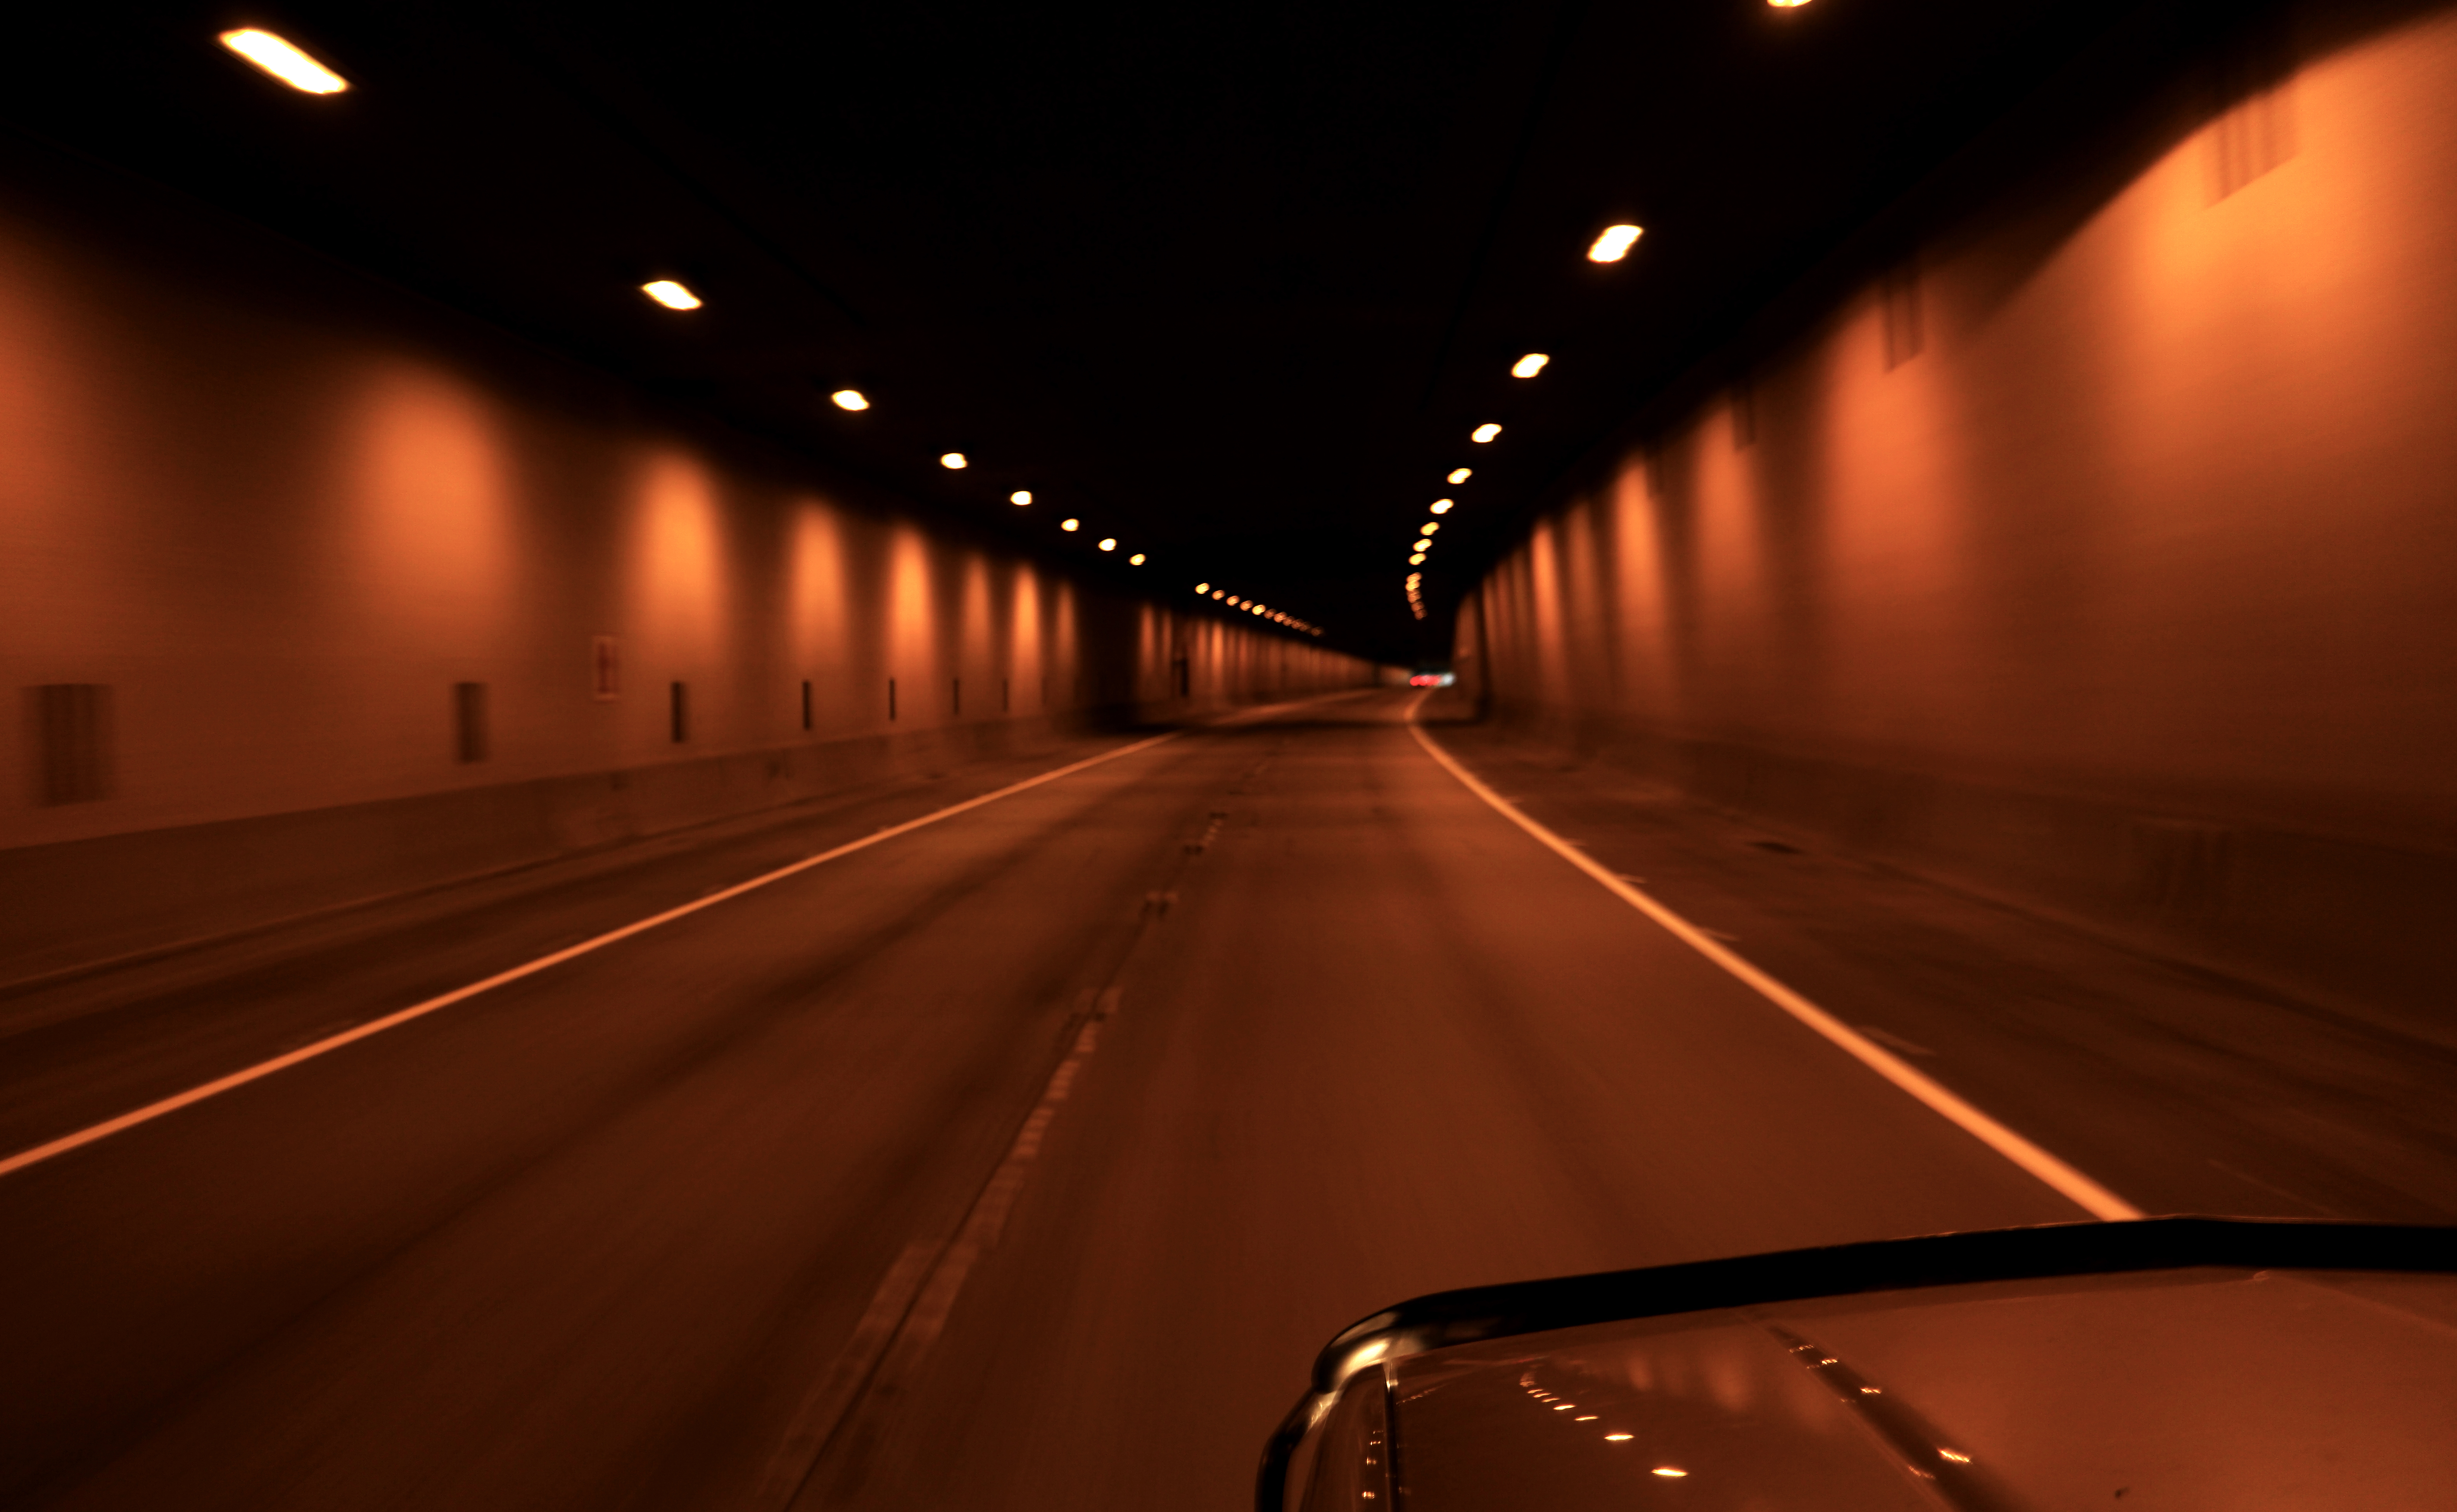 A dark tunnel with two traffic lanes, a white dashed line down the center, and a yellow solid line on either side. On the ceiling, two rows of lights give the tunnel a warm glow.